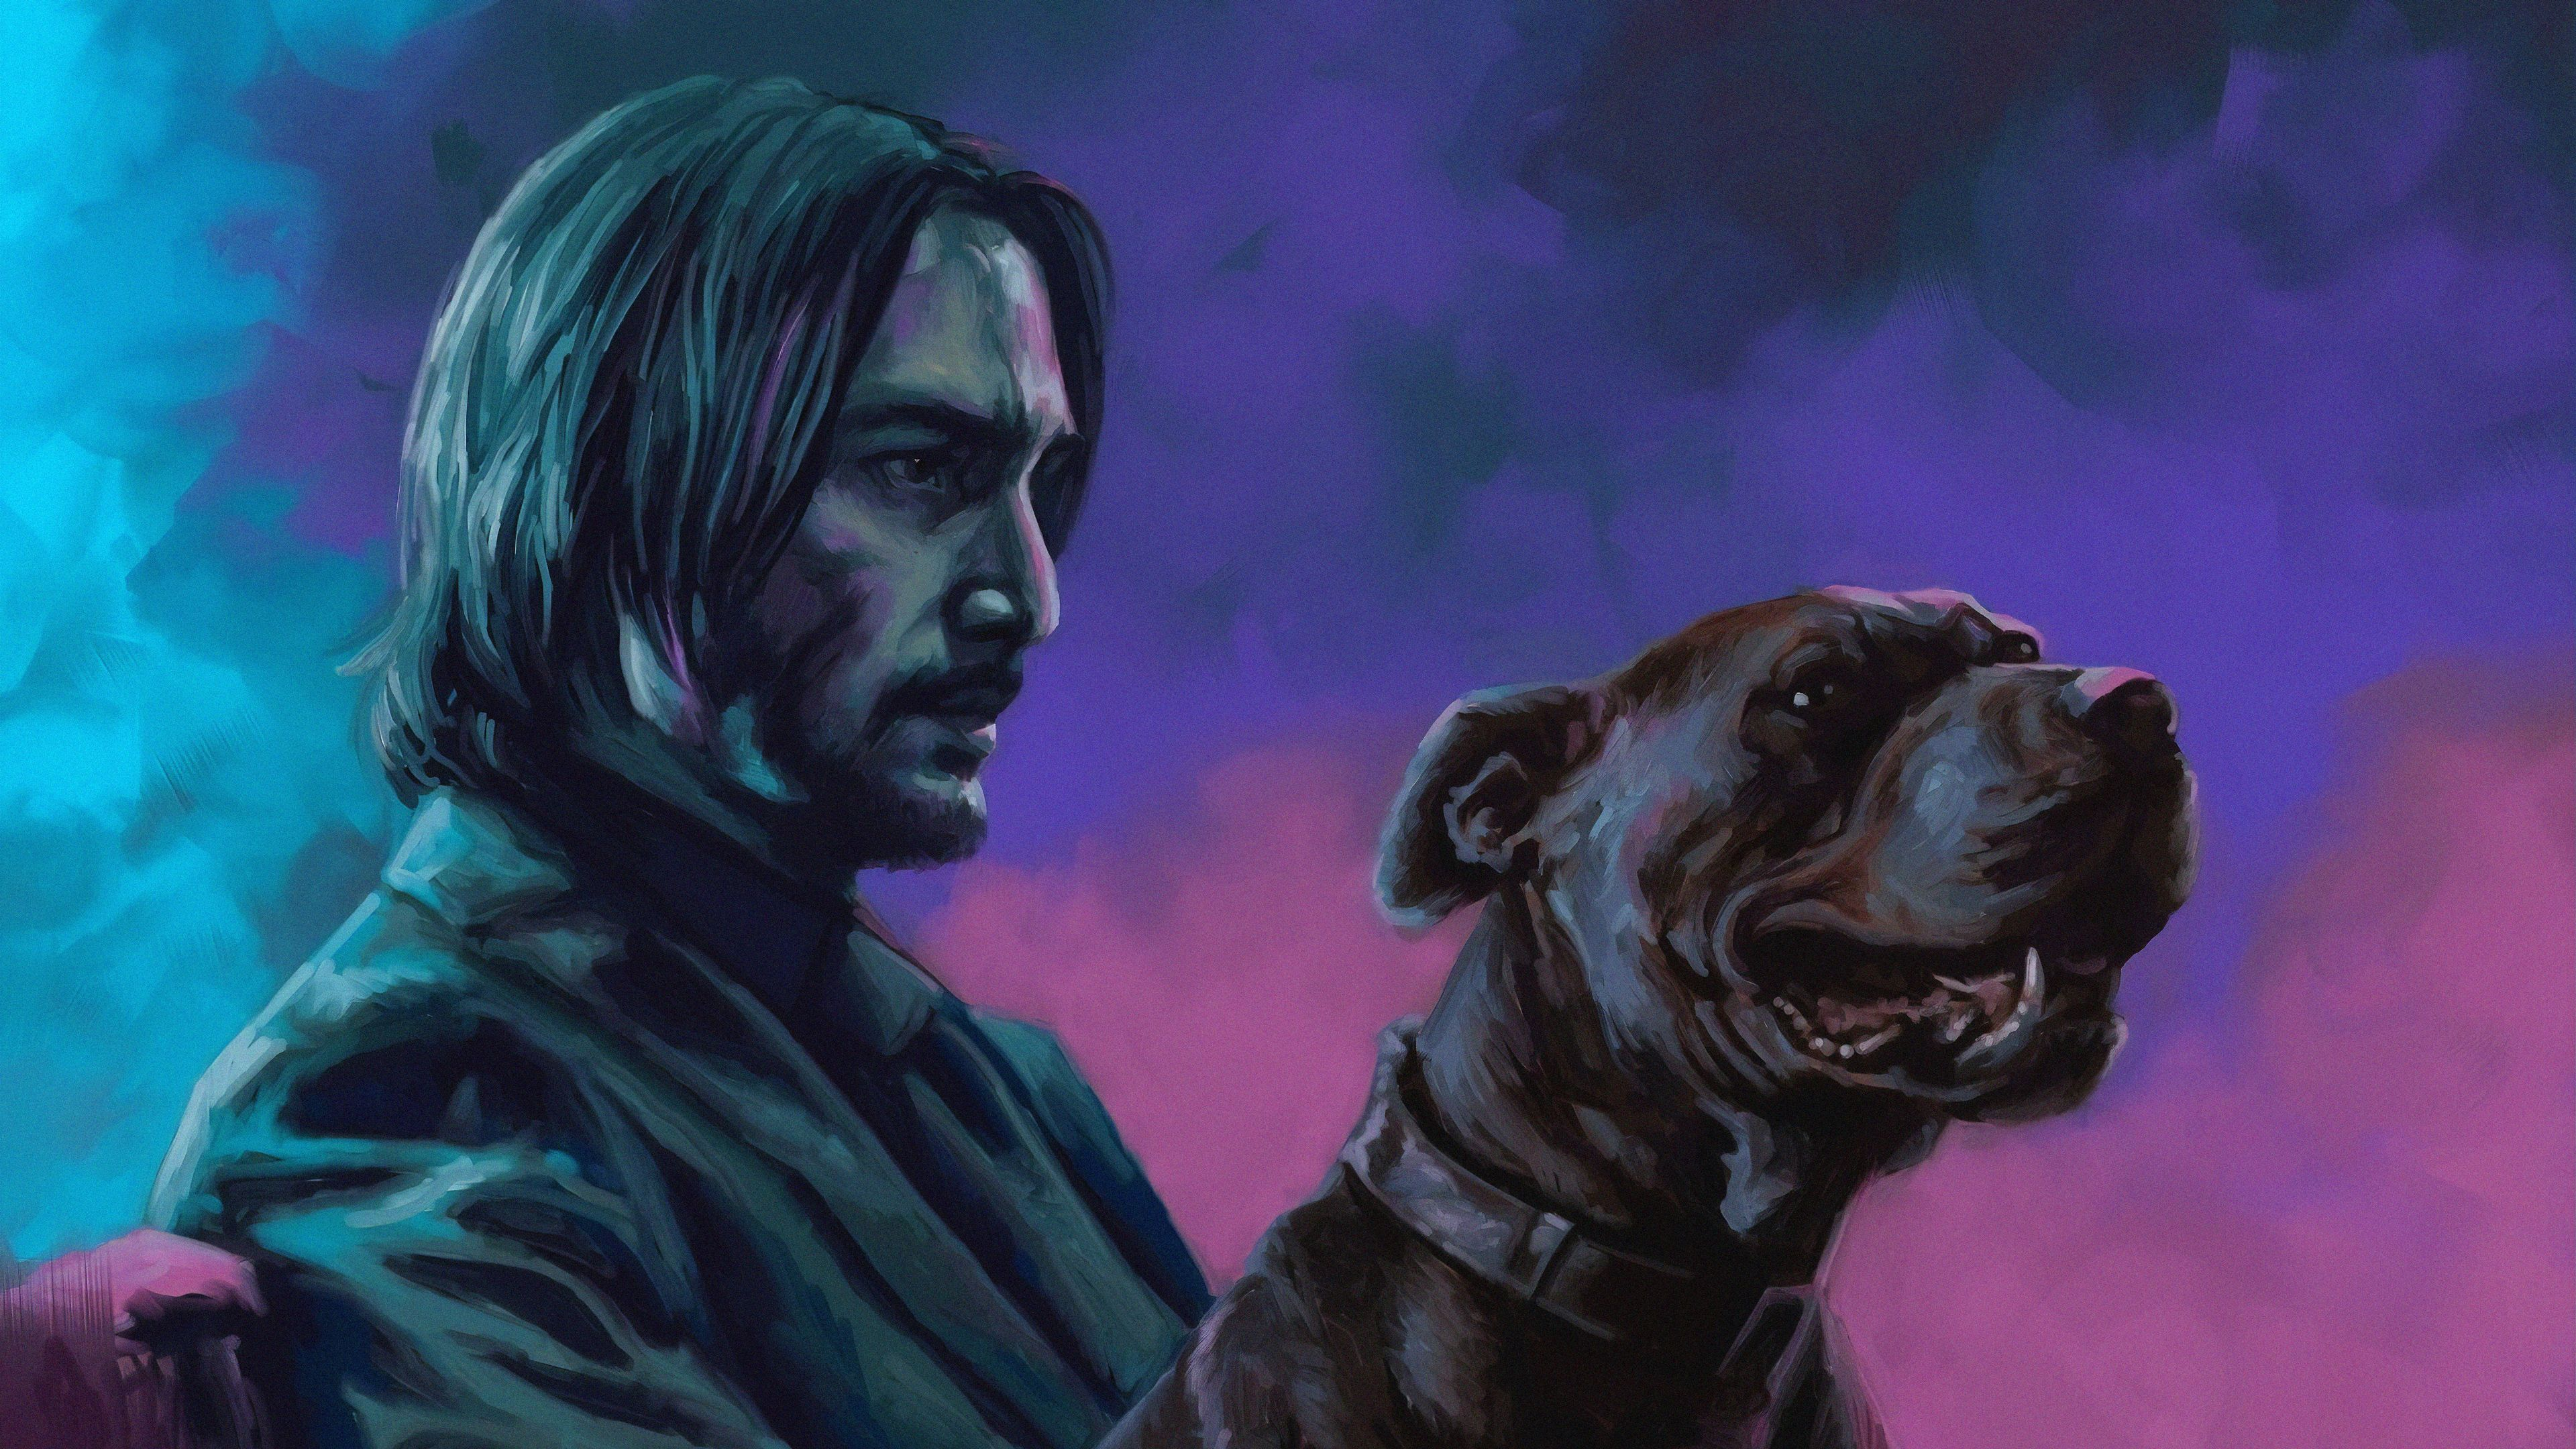 John Wick With Dog John Wick Wallpapers Hd Wallpapers Artwork Wallpapers 4k Wallpapers In 2020 Movie Artwork Artwork Animal Wallpaper